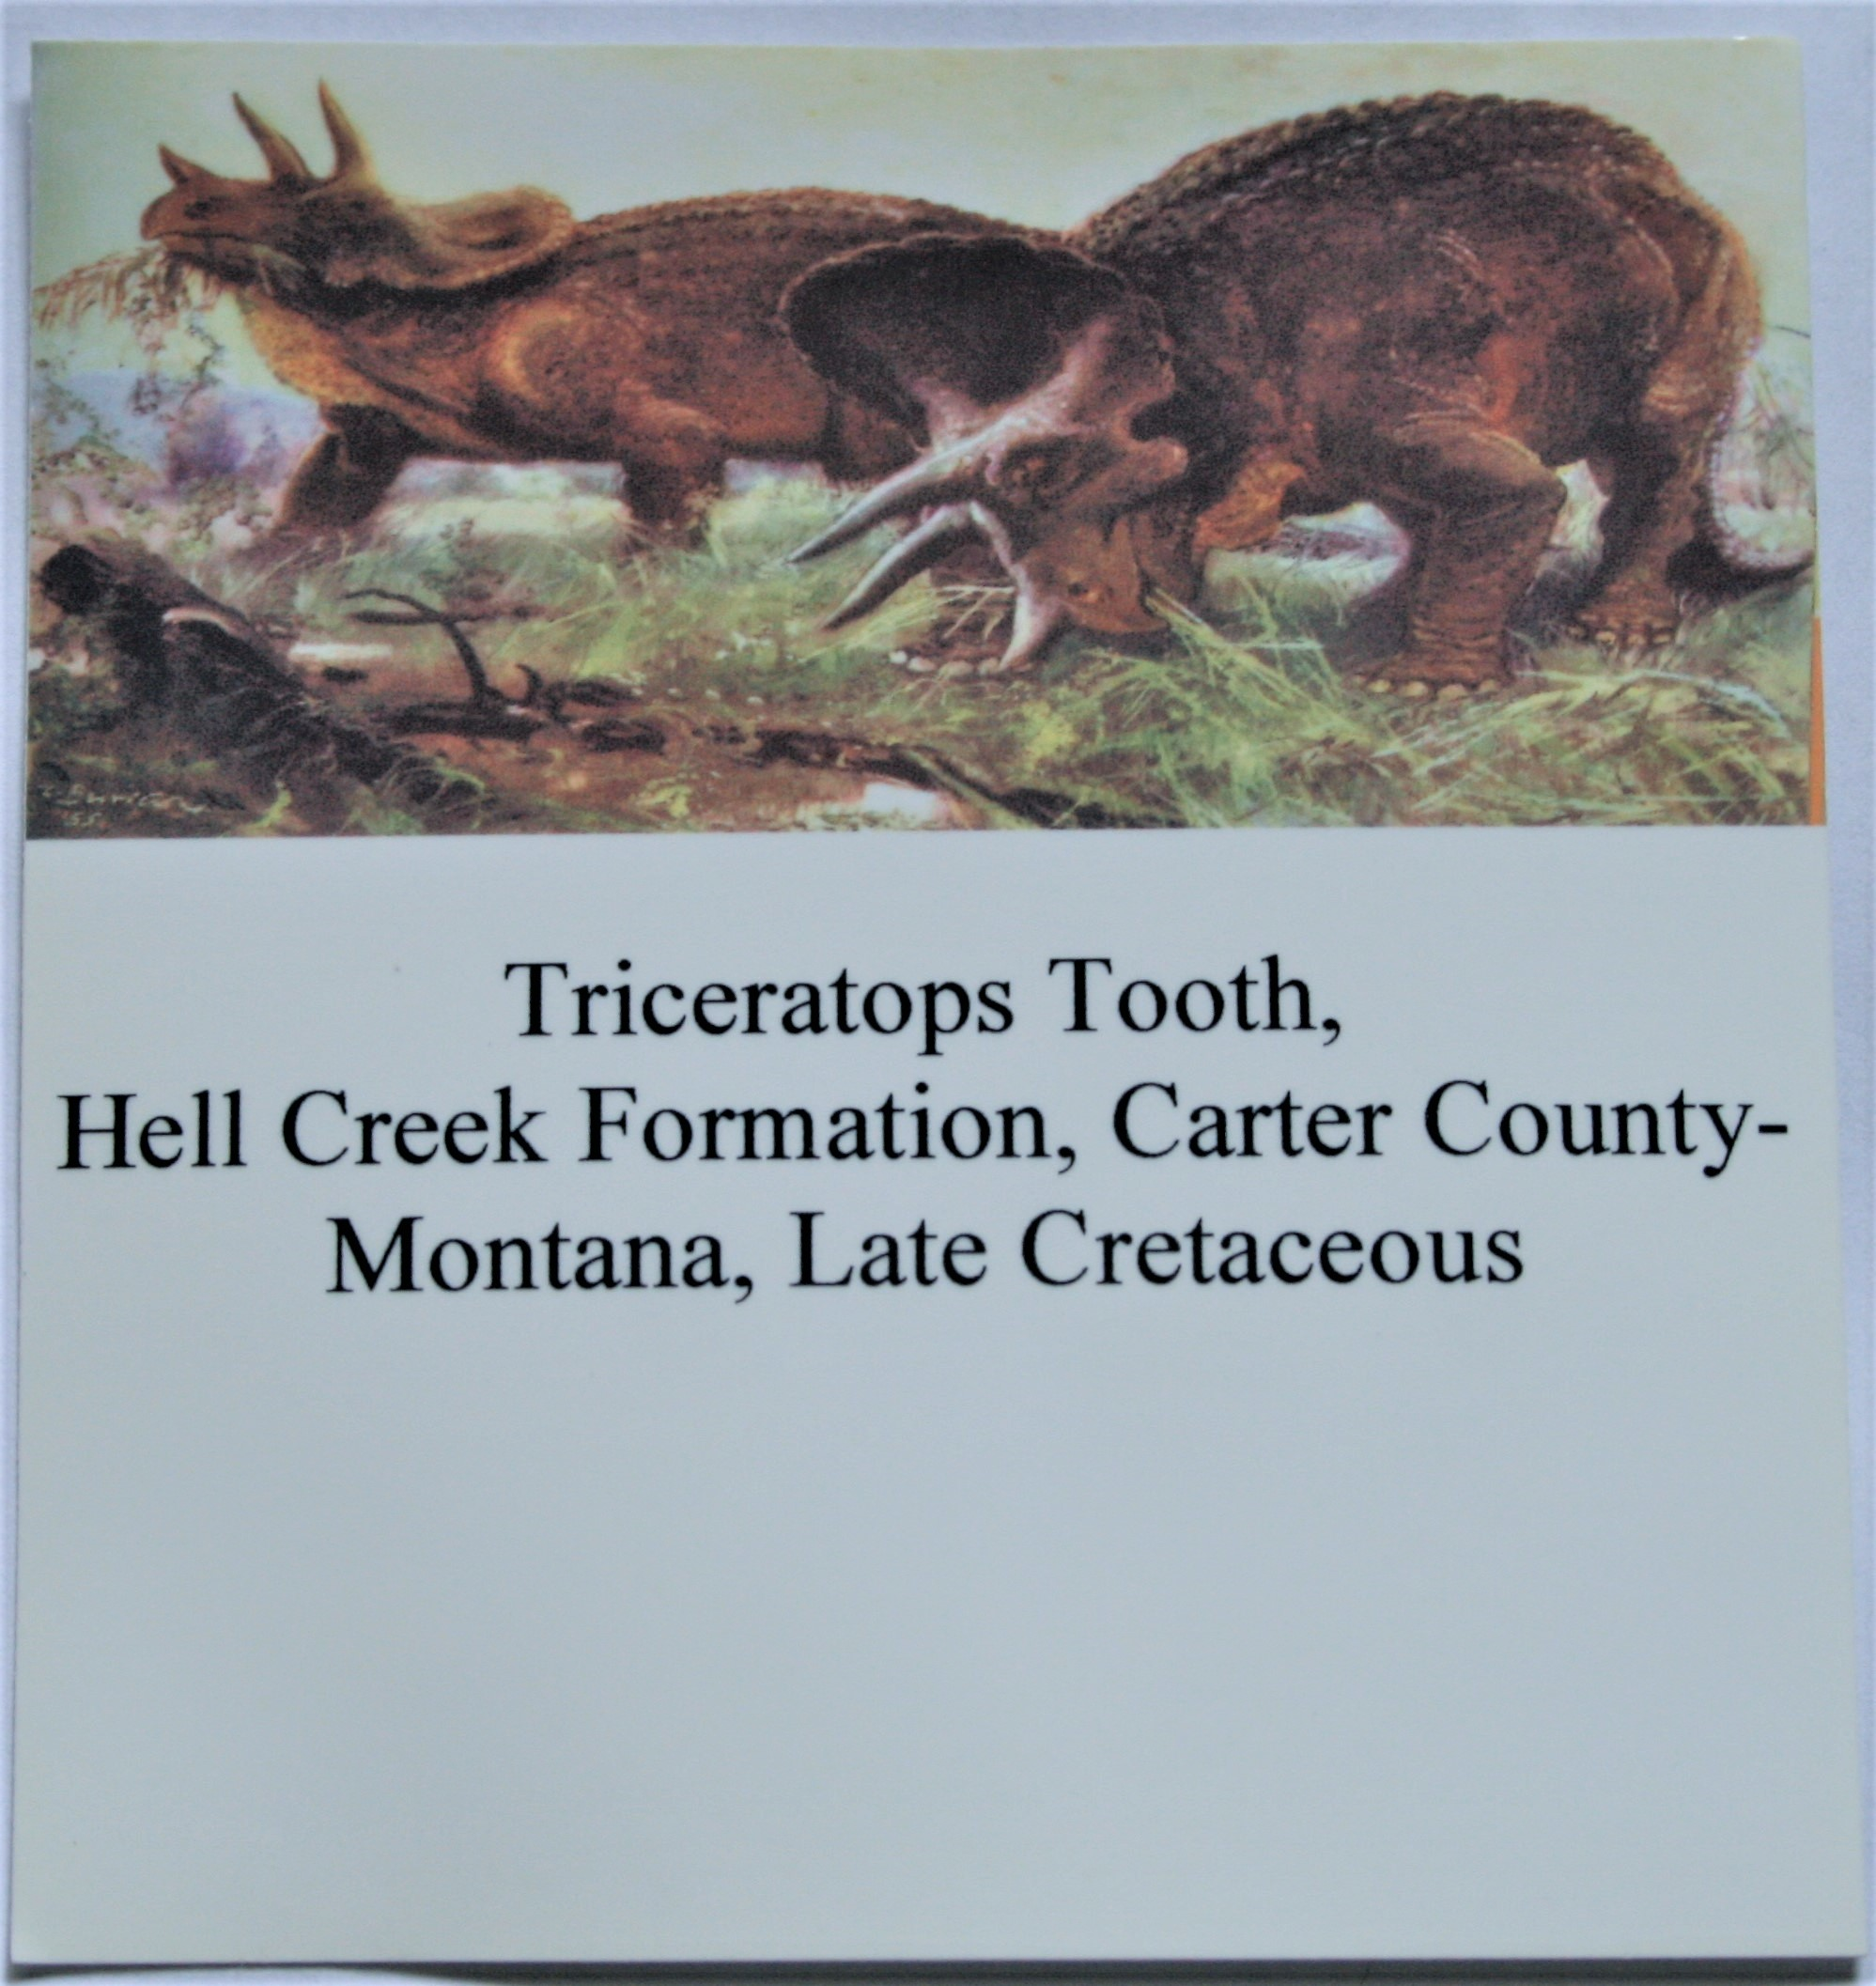 Triceratops tooth